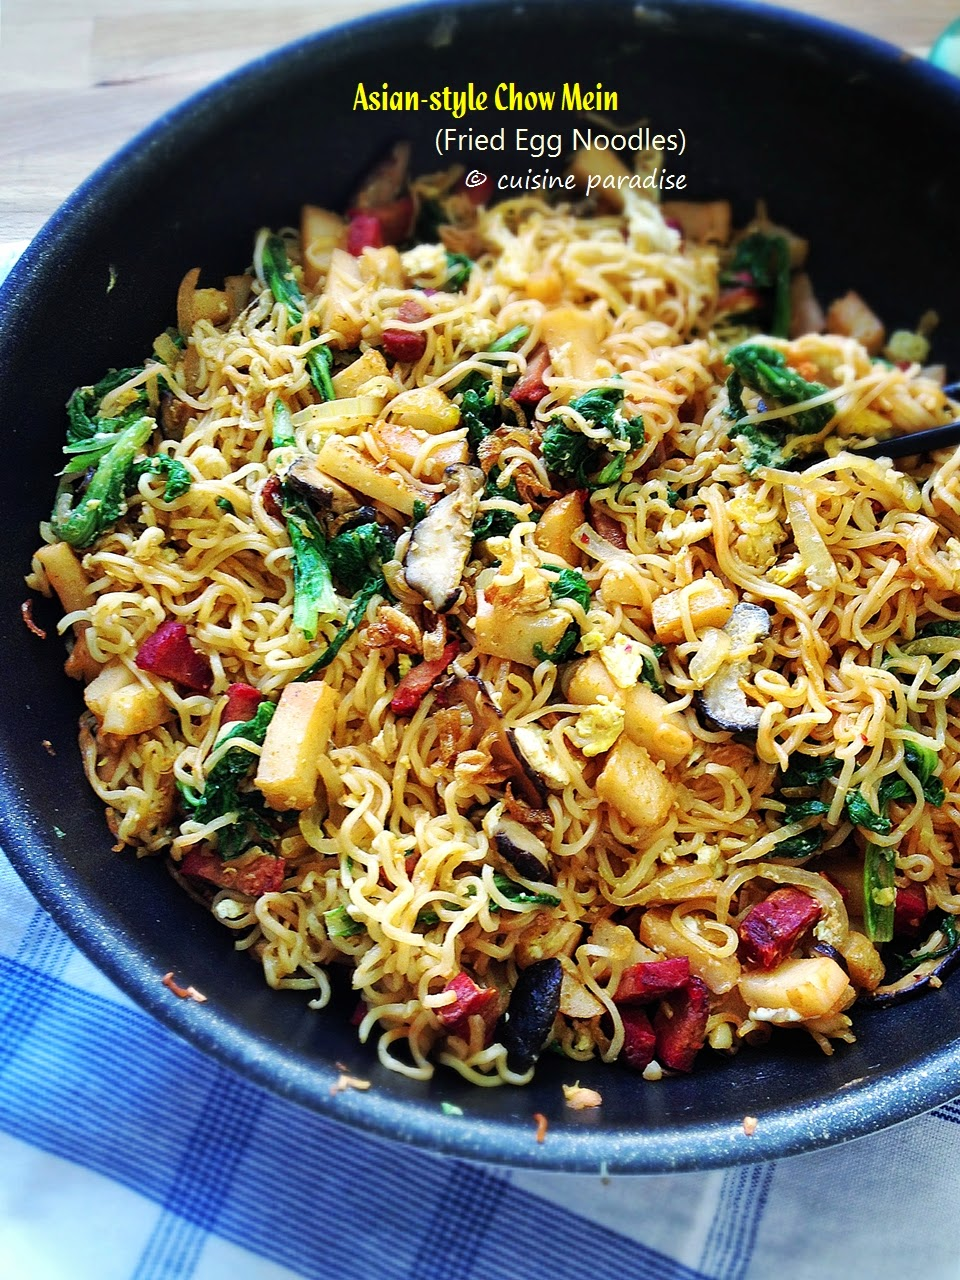 Cuisine paradise singapore food blog recipes reviews and travel asian style chow mein fried egg noodles forumfinder Gallery